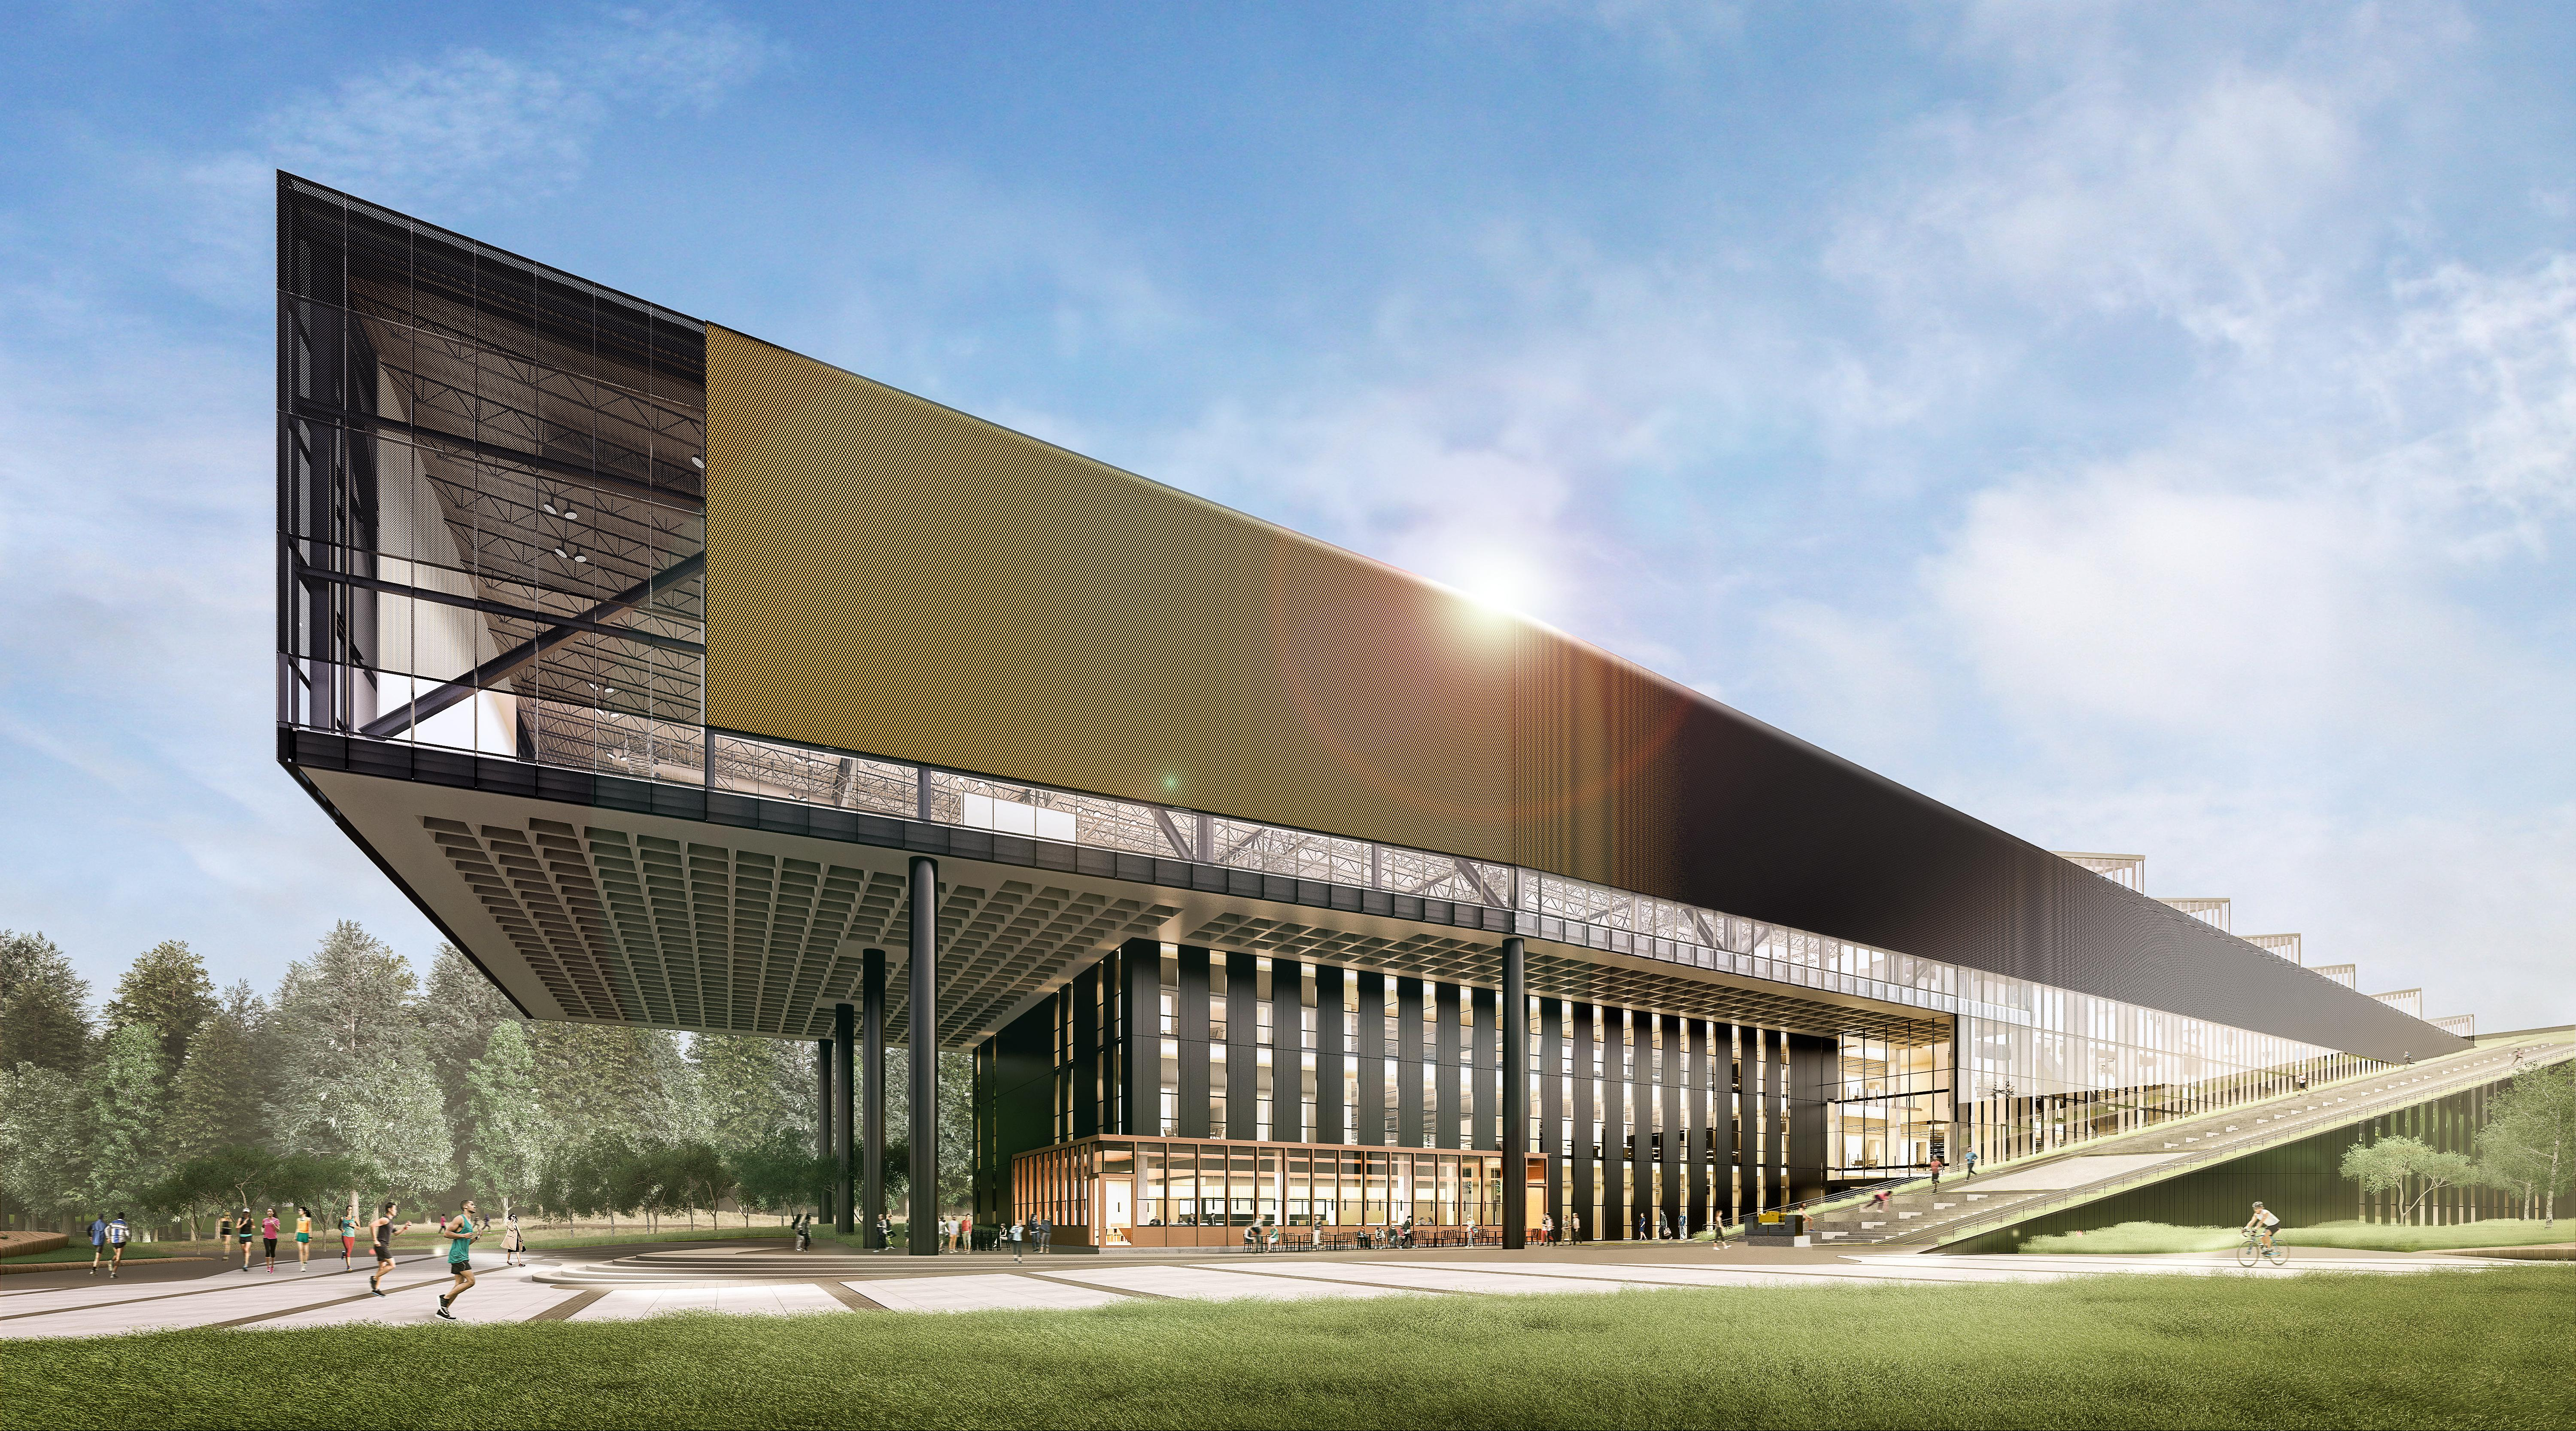 Nike Names Its New Advanced Innovation Building After LeBron